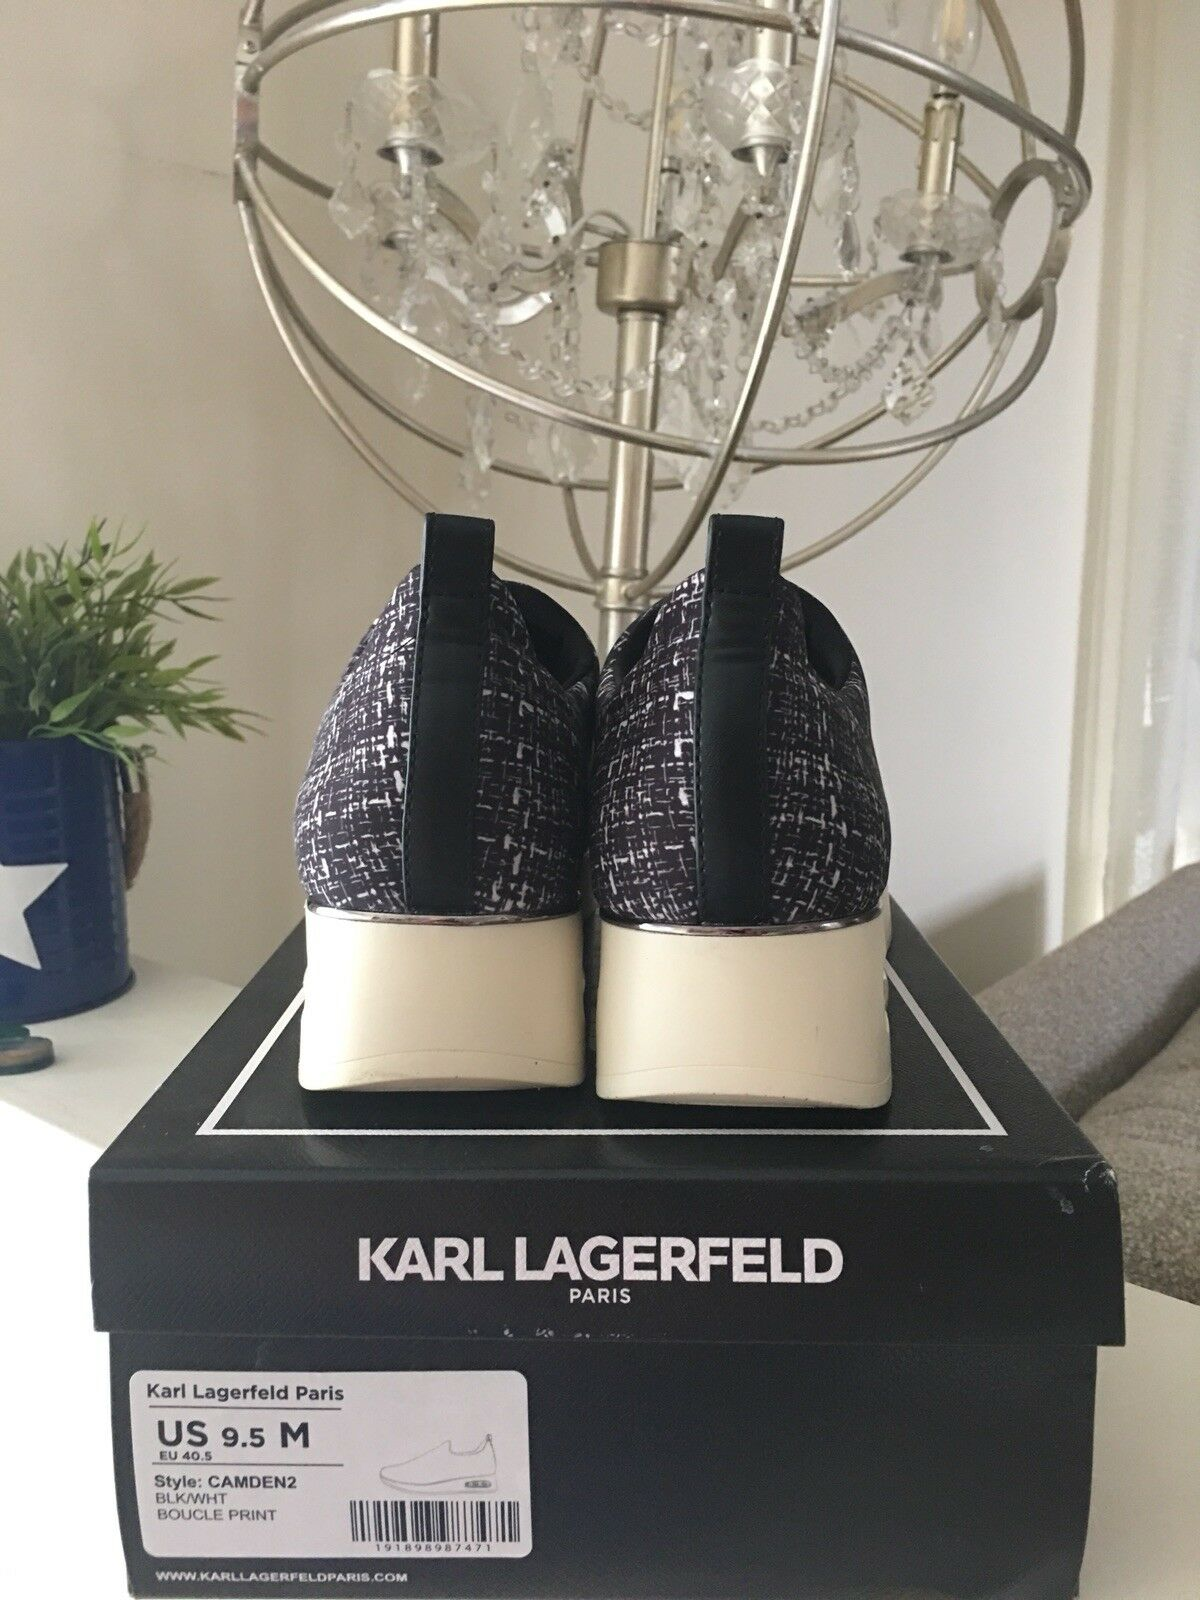 Karl Lagerfeld Paris .shoes 9.5 Medium Medium Medium            Style  CAMDEN2.     BLK WHT d46eca